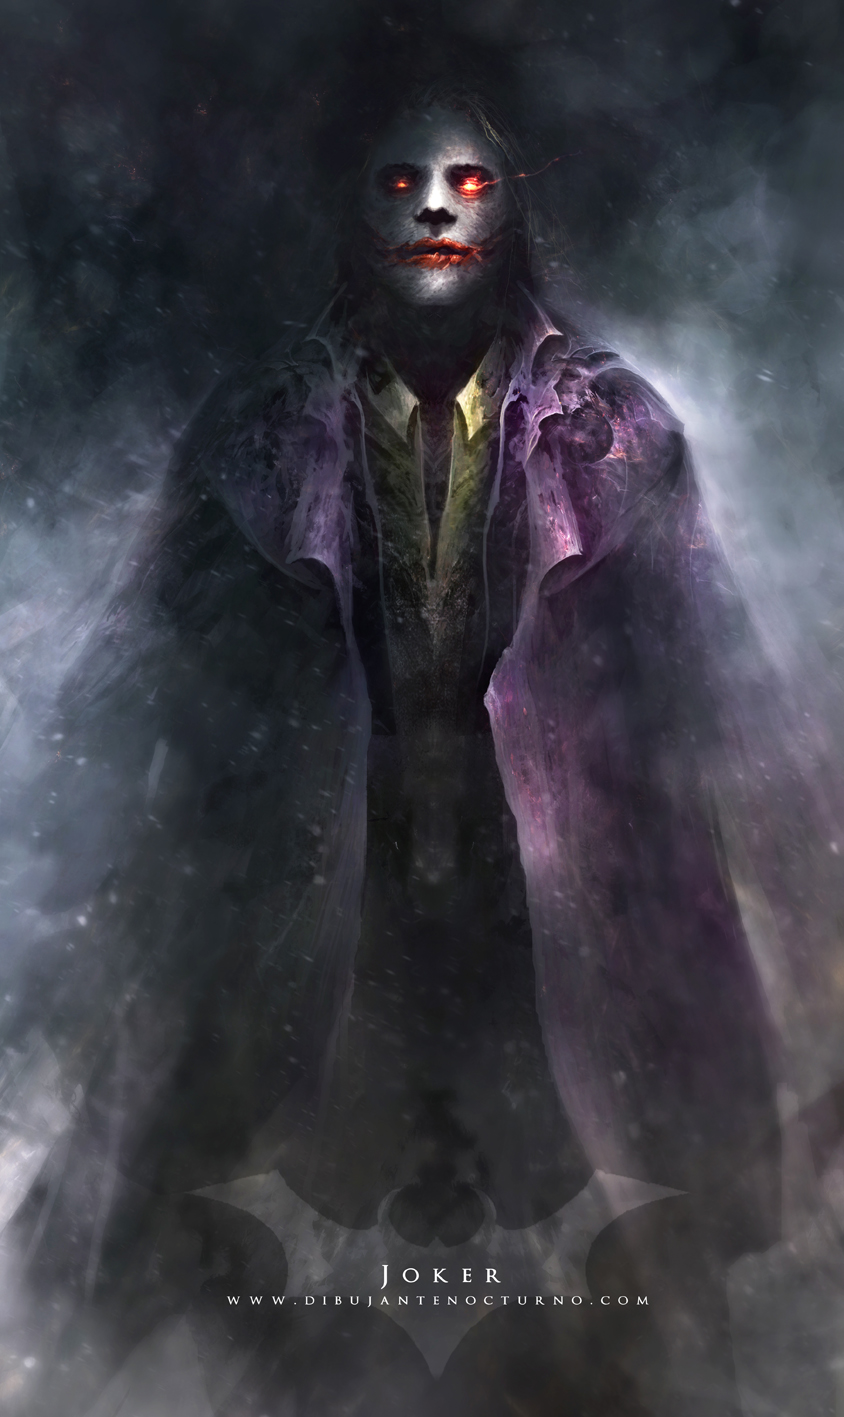 Joker by Dibujante-nocturno on DeviantArt